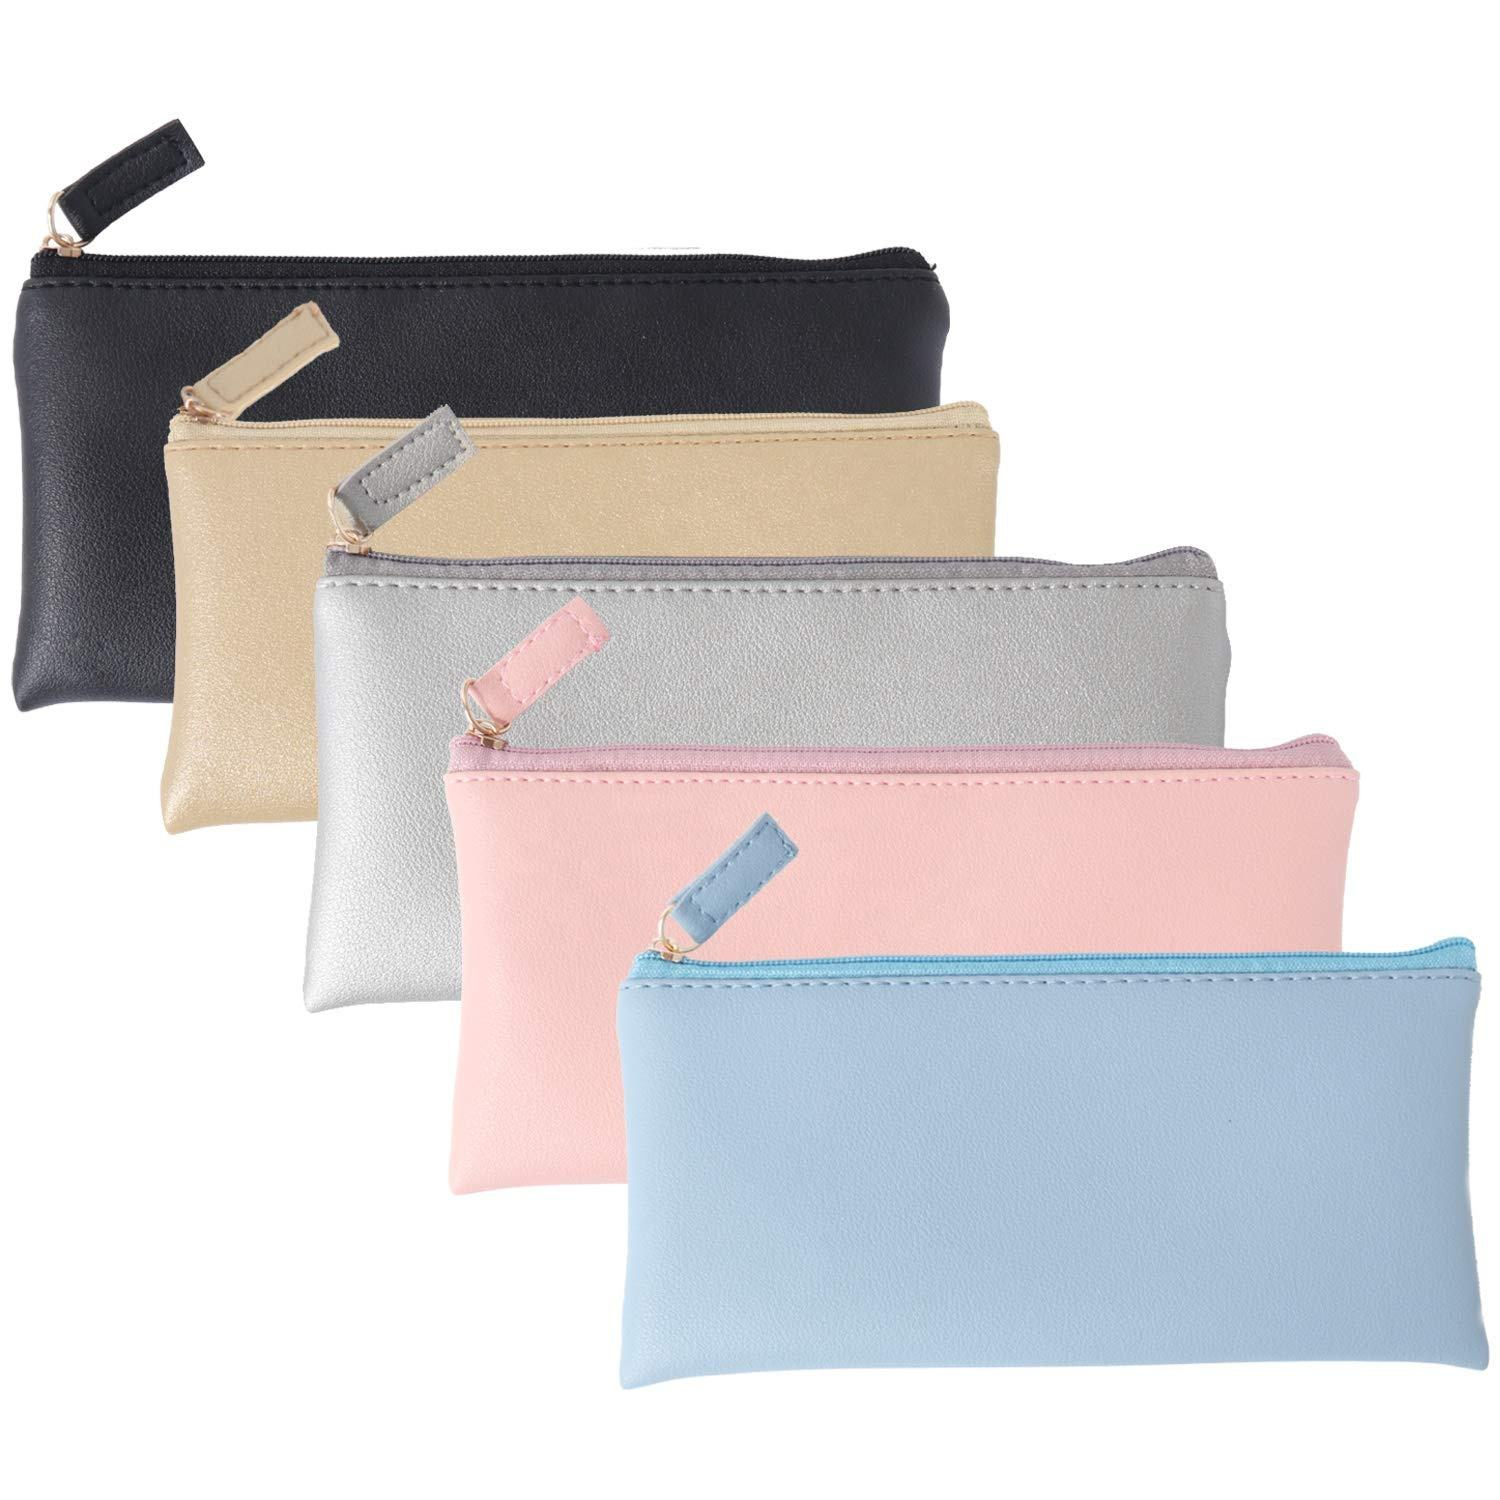 Micani Custom Ontworpen Pu Leather Pouch Make Up Cosmetische Tas Met Rits Make Up Bag